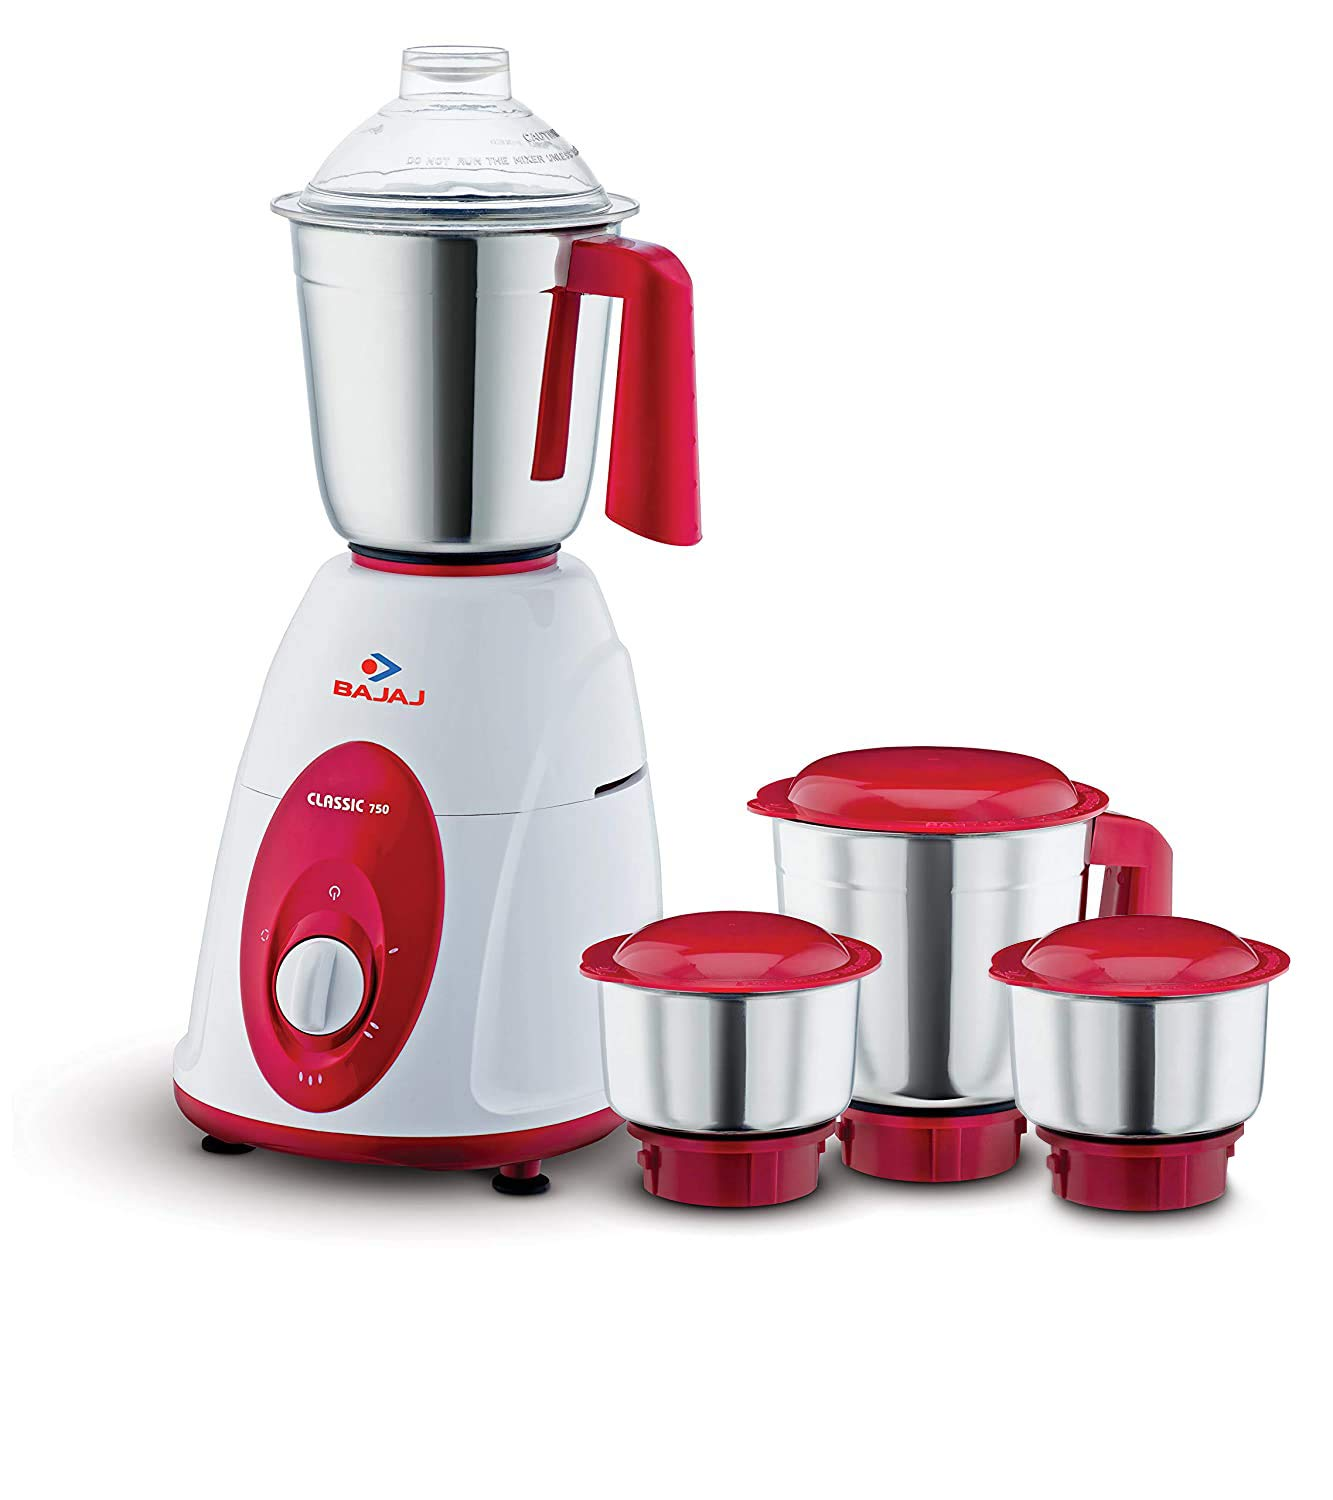 Bajaj Classic Mixer Grinder, 750W, 4 Jars (Comes with an Additional Chutney jar)